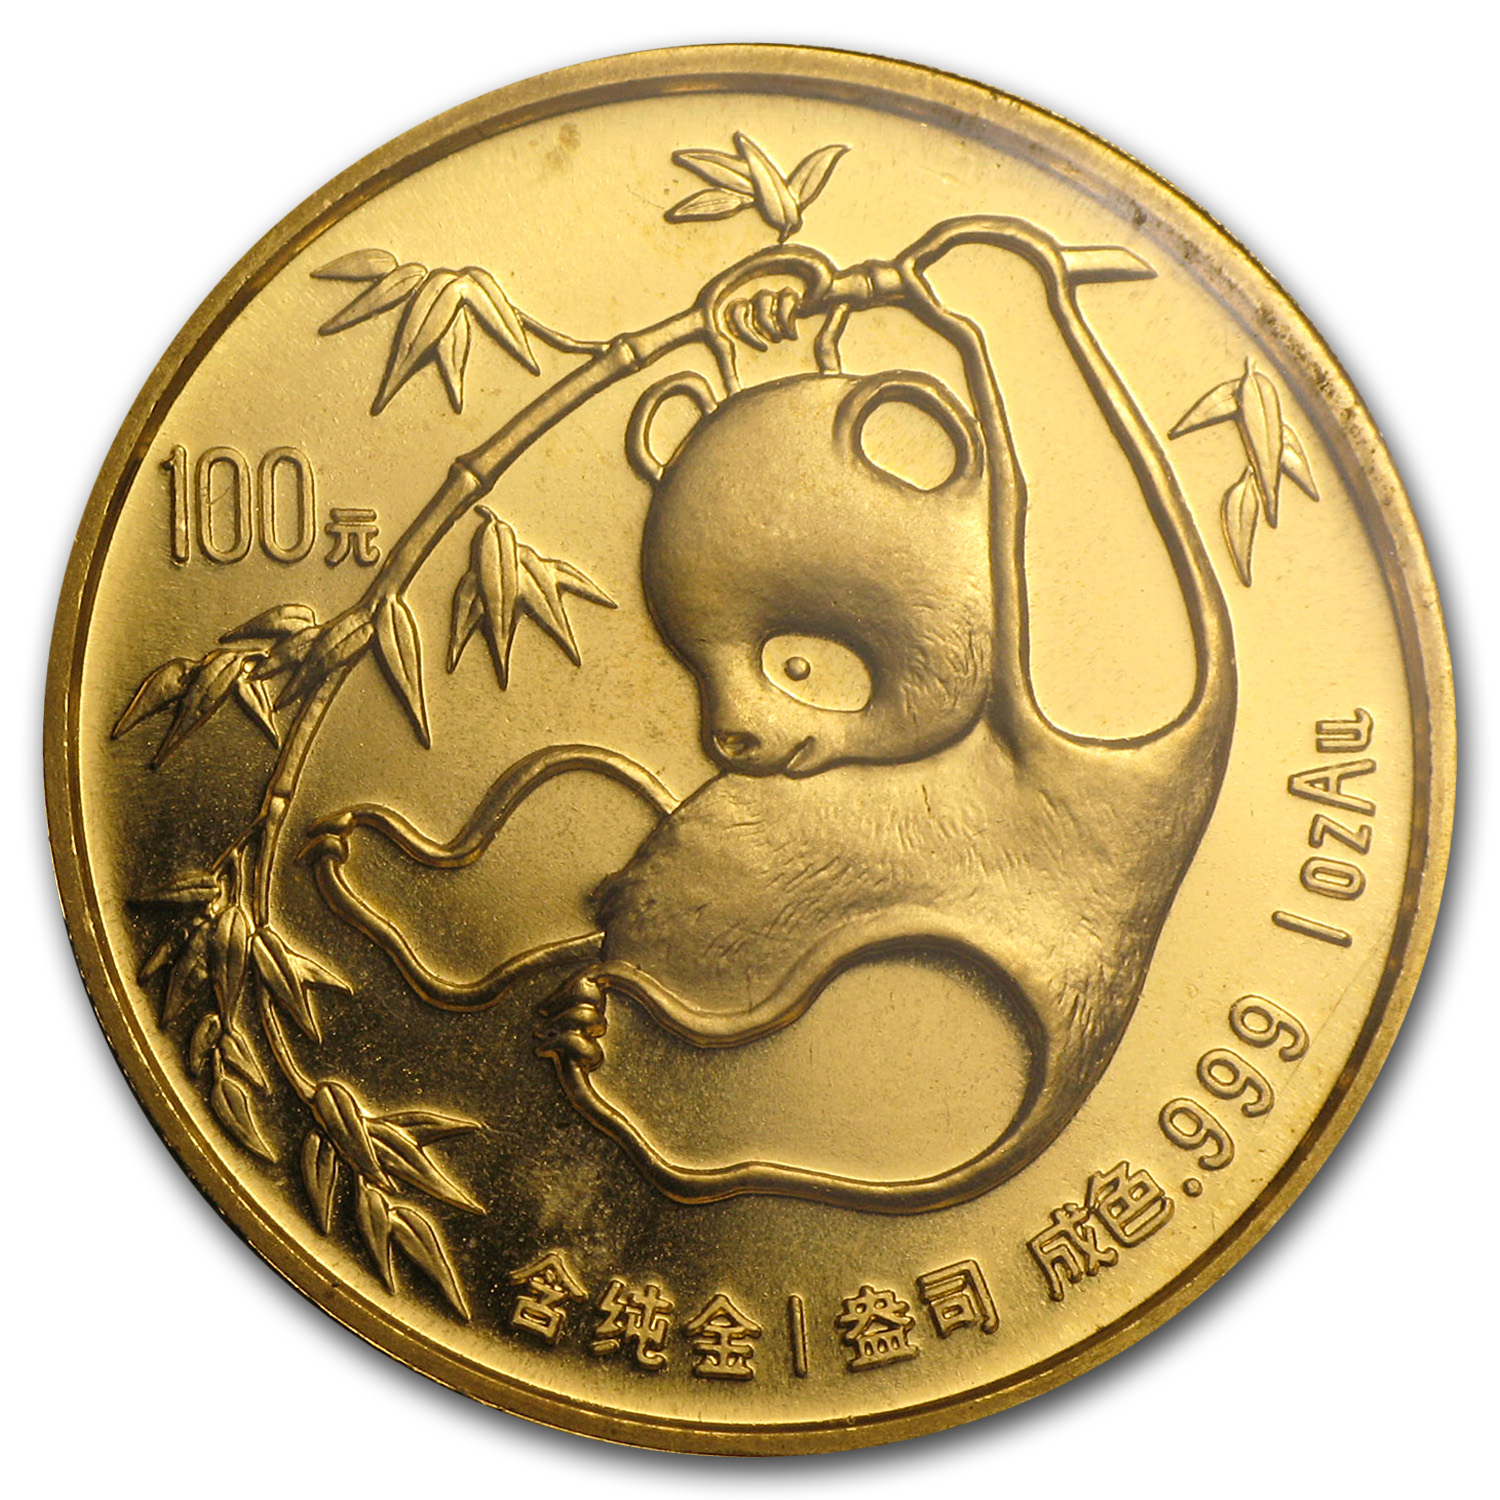 1985 1 oz Gold Chinese Panda (Sealed)